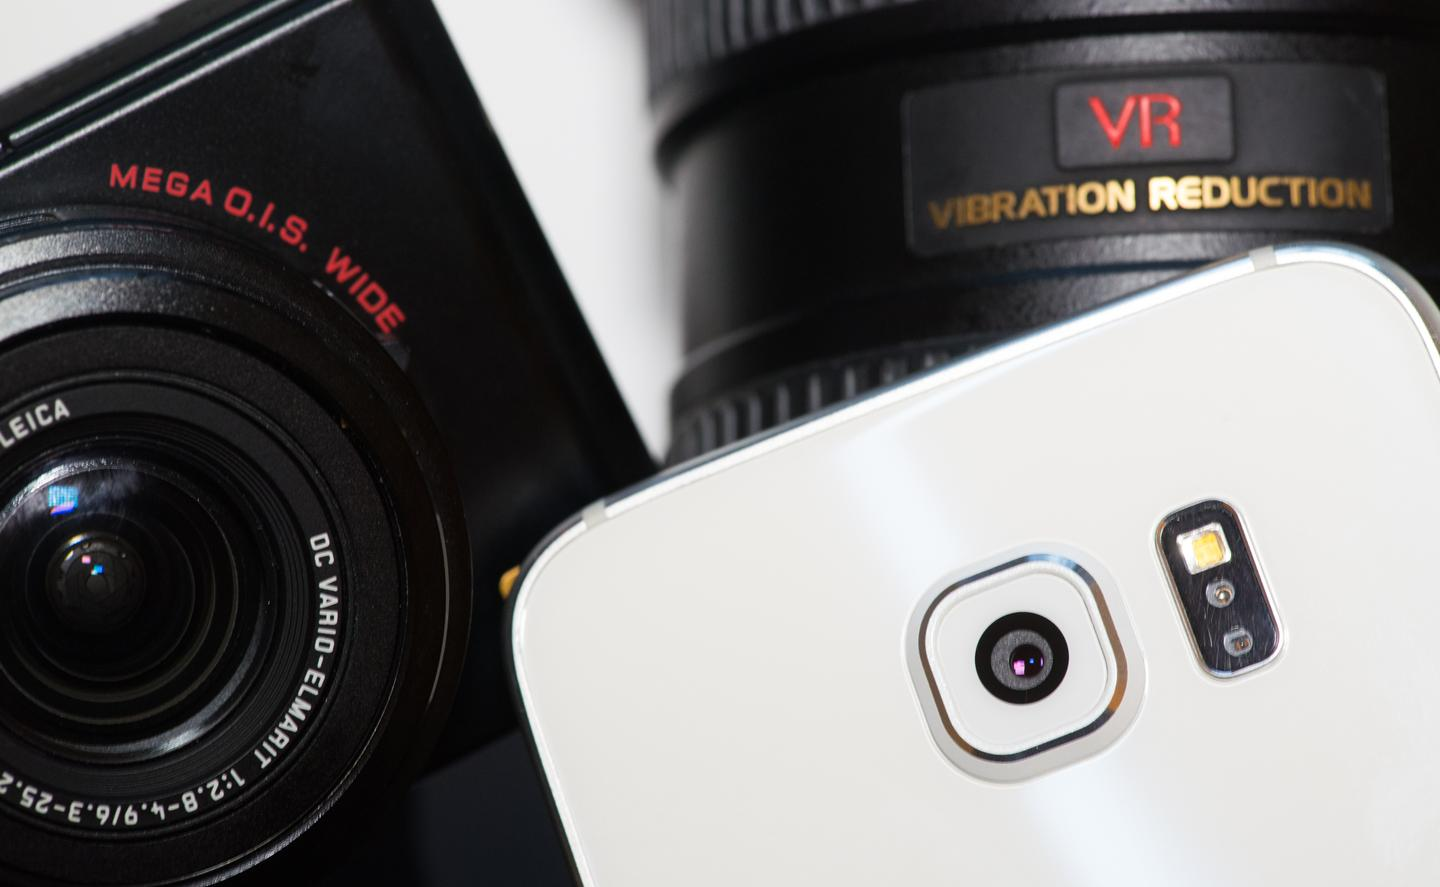 Gizmag looks at Optical Image Stabilization (OIS), and whether you'll want it in your next smartphone